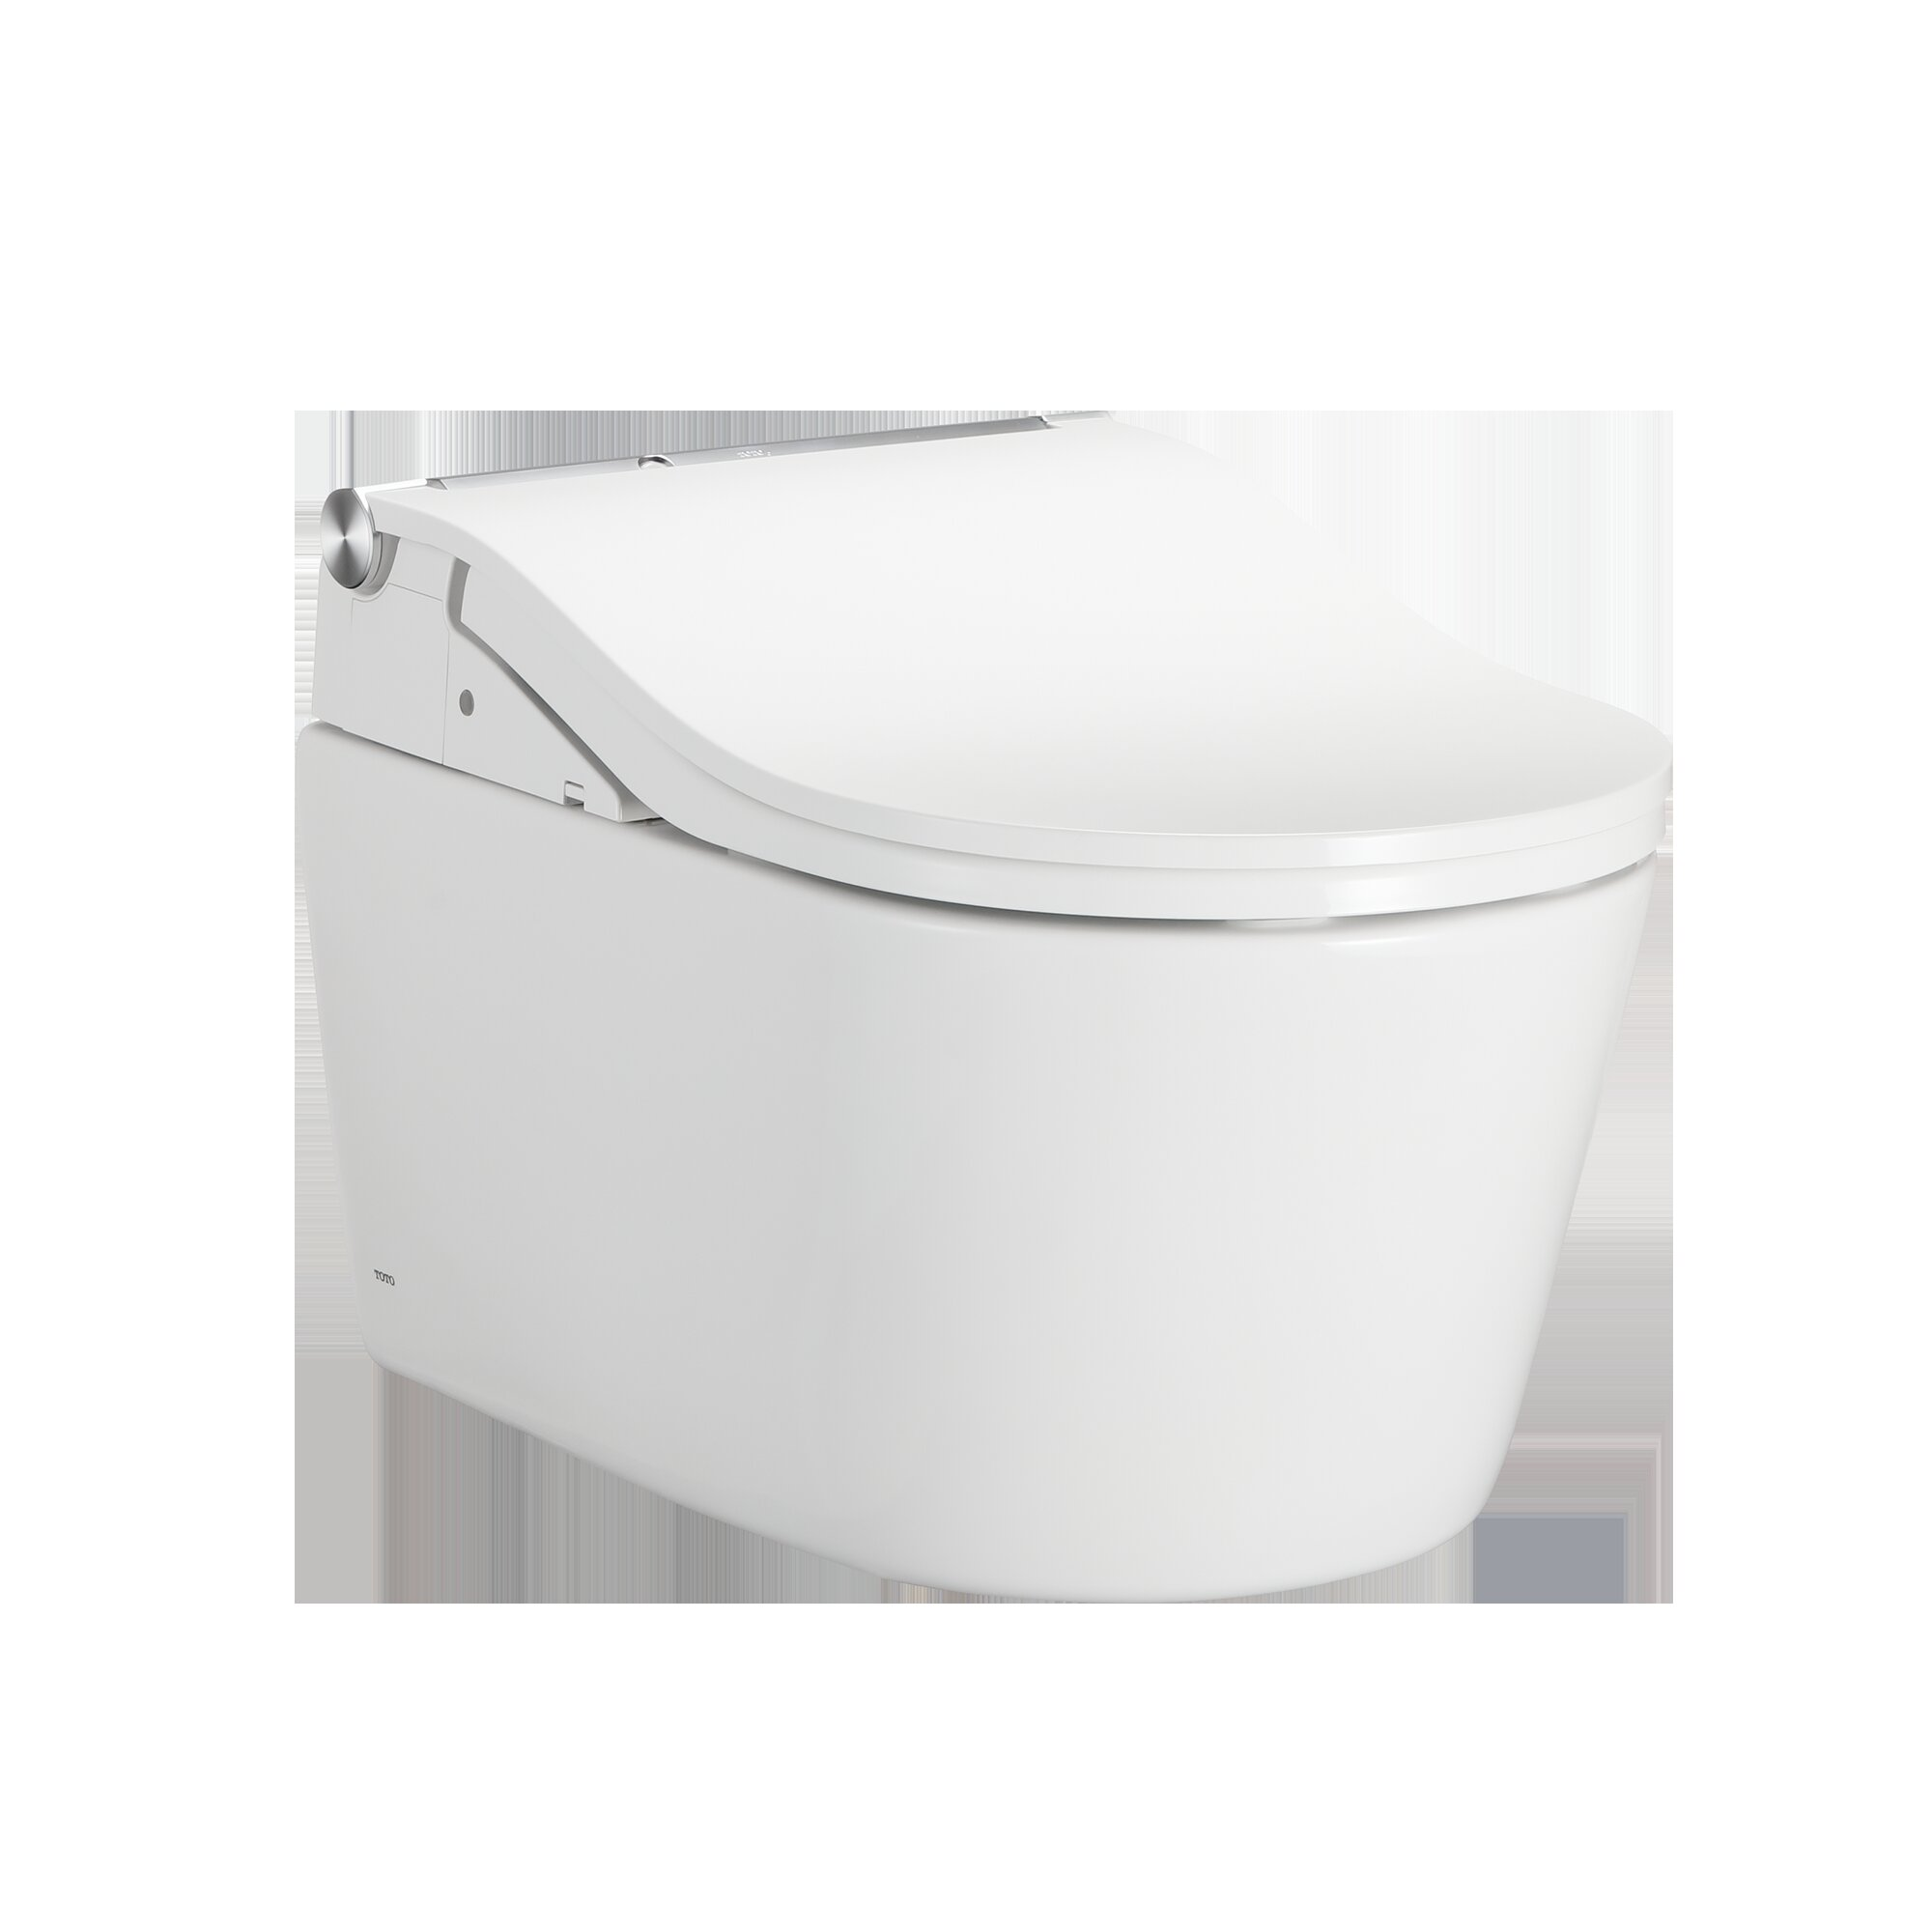 Toto Dual Flush Elongated Wall Mounted With Tornado Flush Seat Included Wayfair